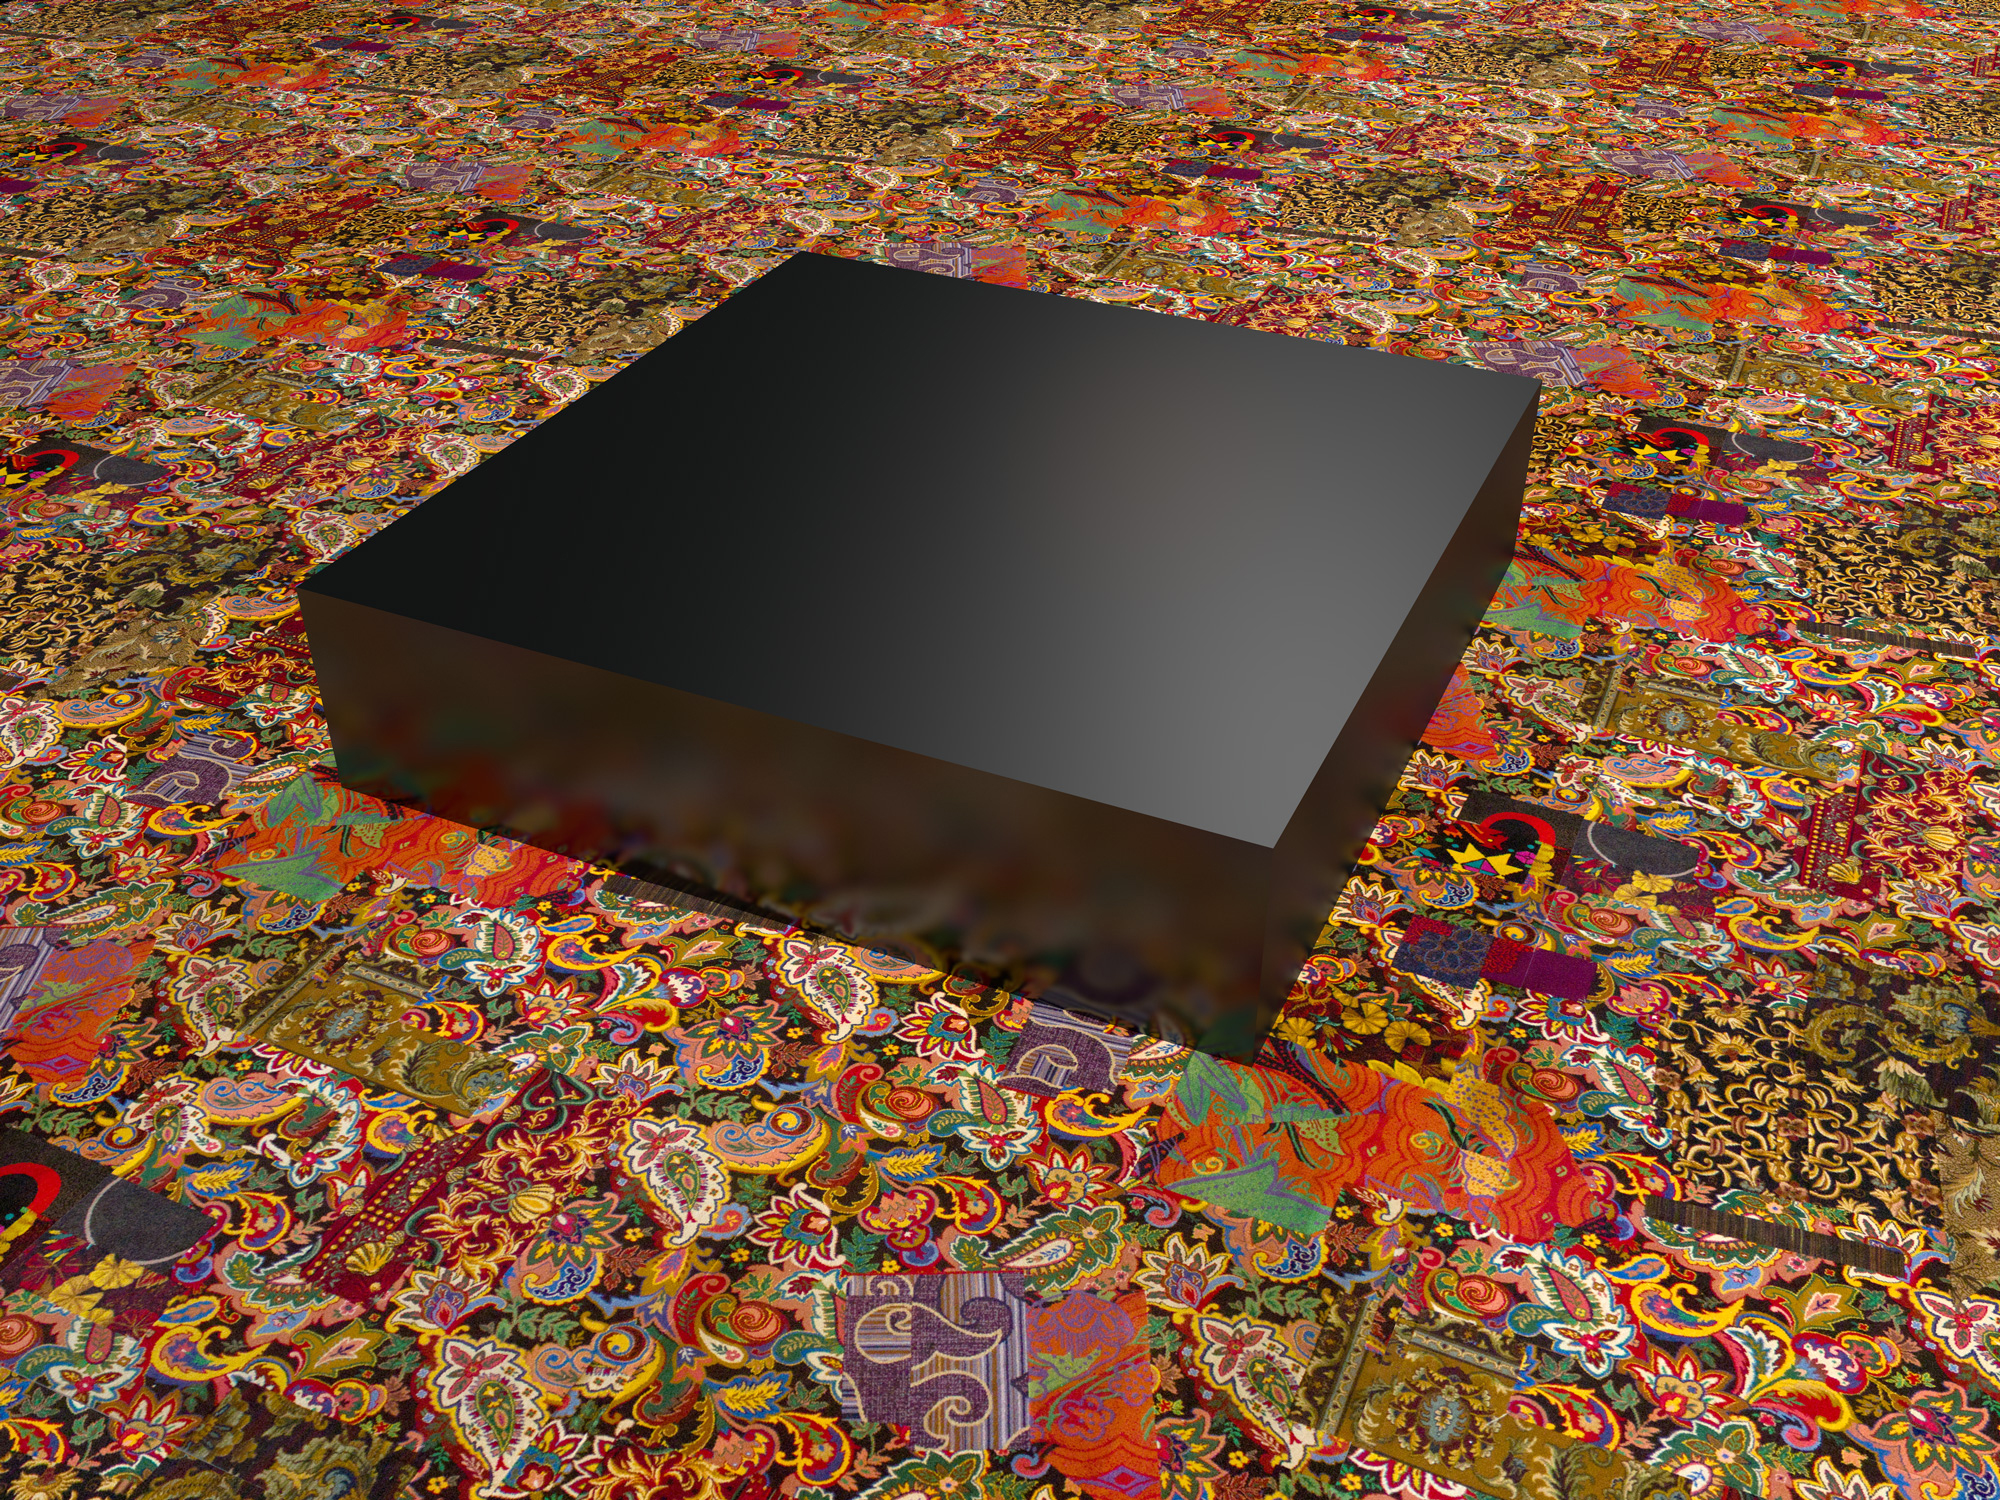 Cayetano Ferrer, Remnant Swatch Repeat with Object, 2012, digital image